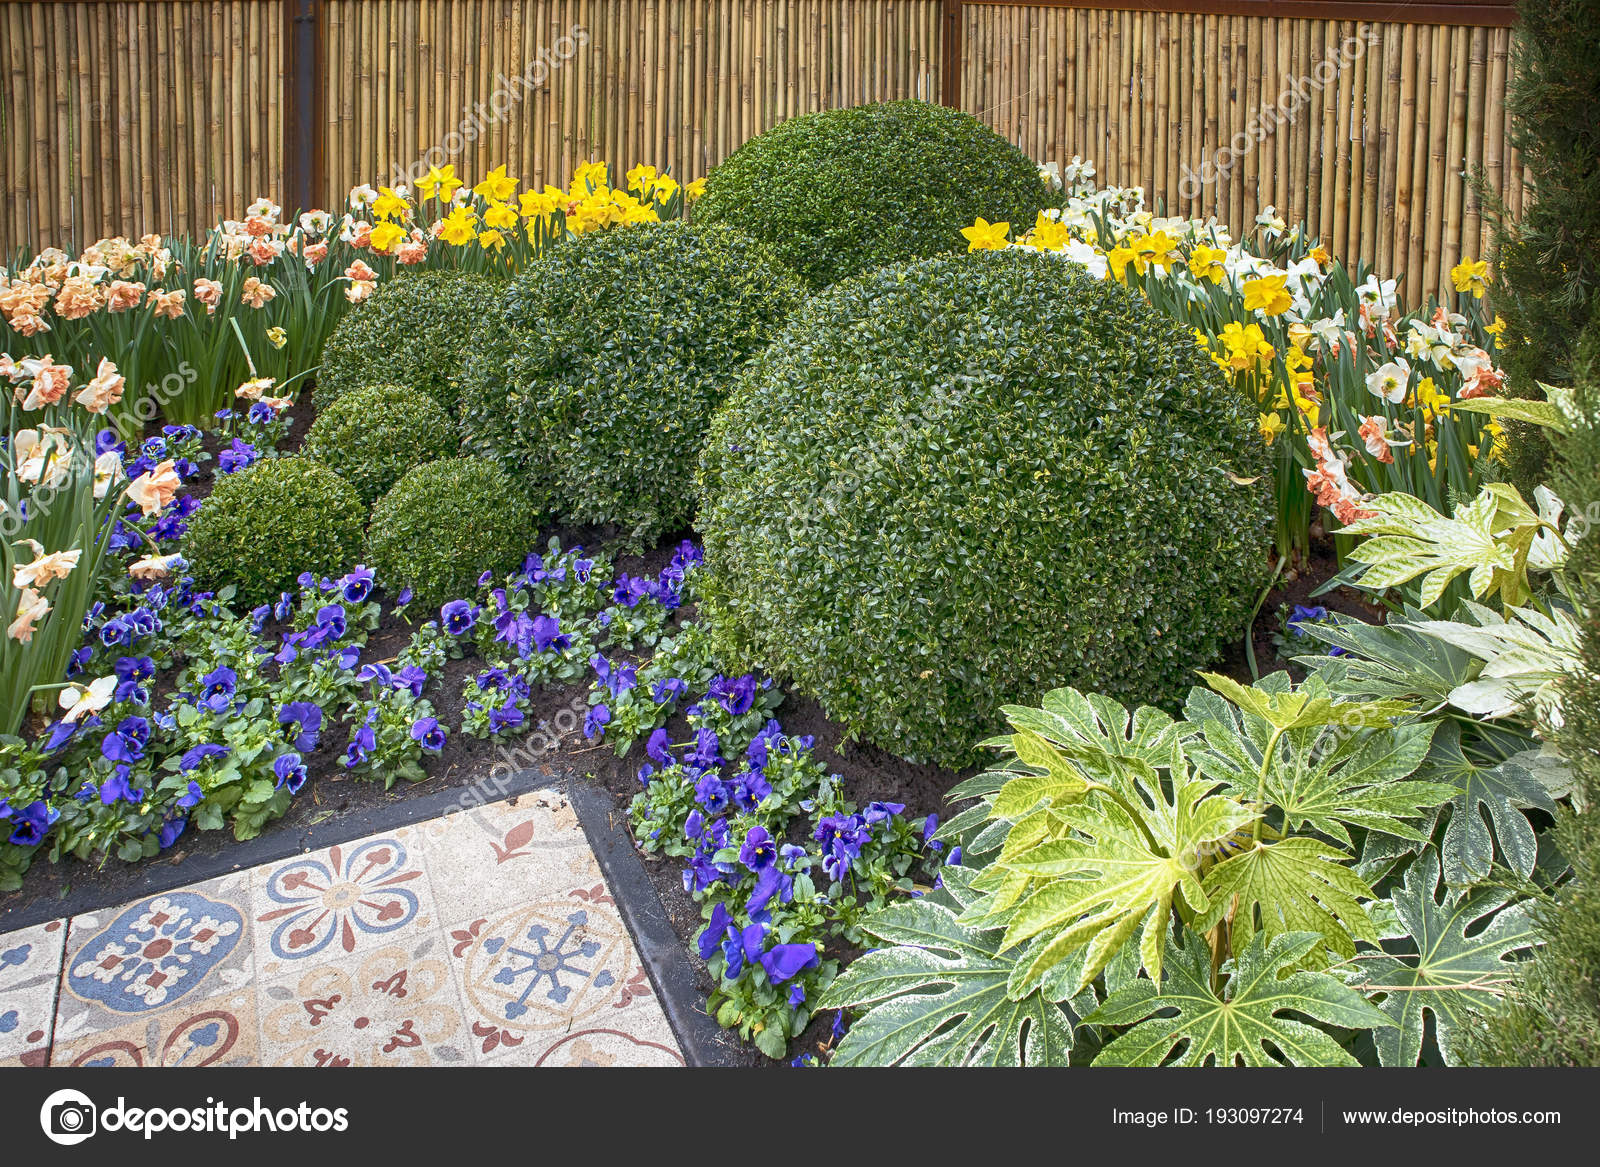 the Round bowls of boxwood as an example of landscape design in the on